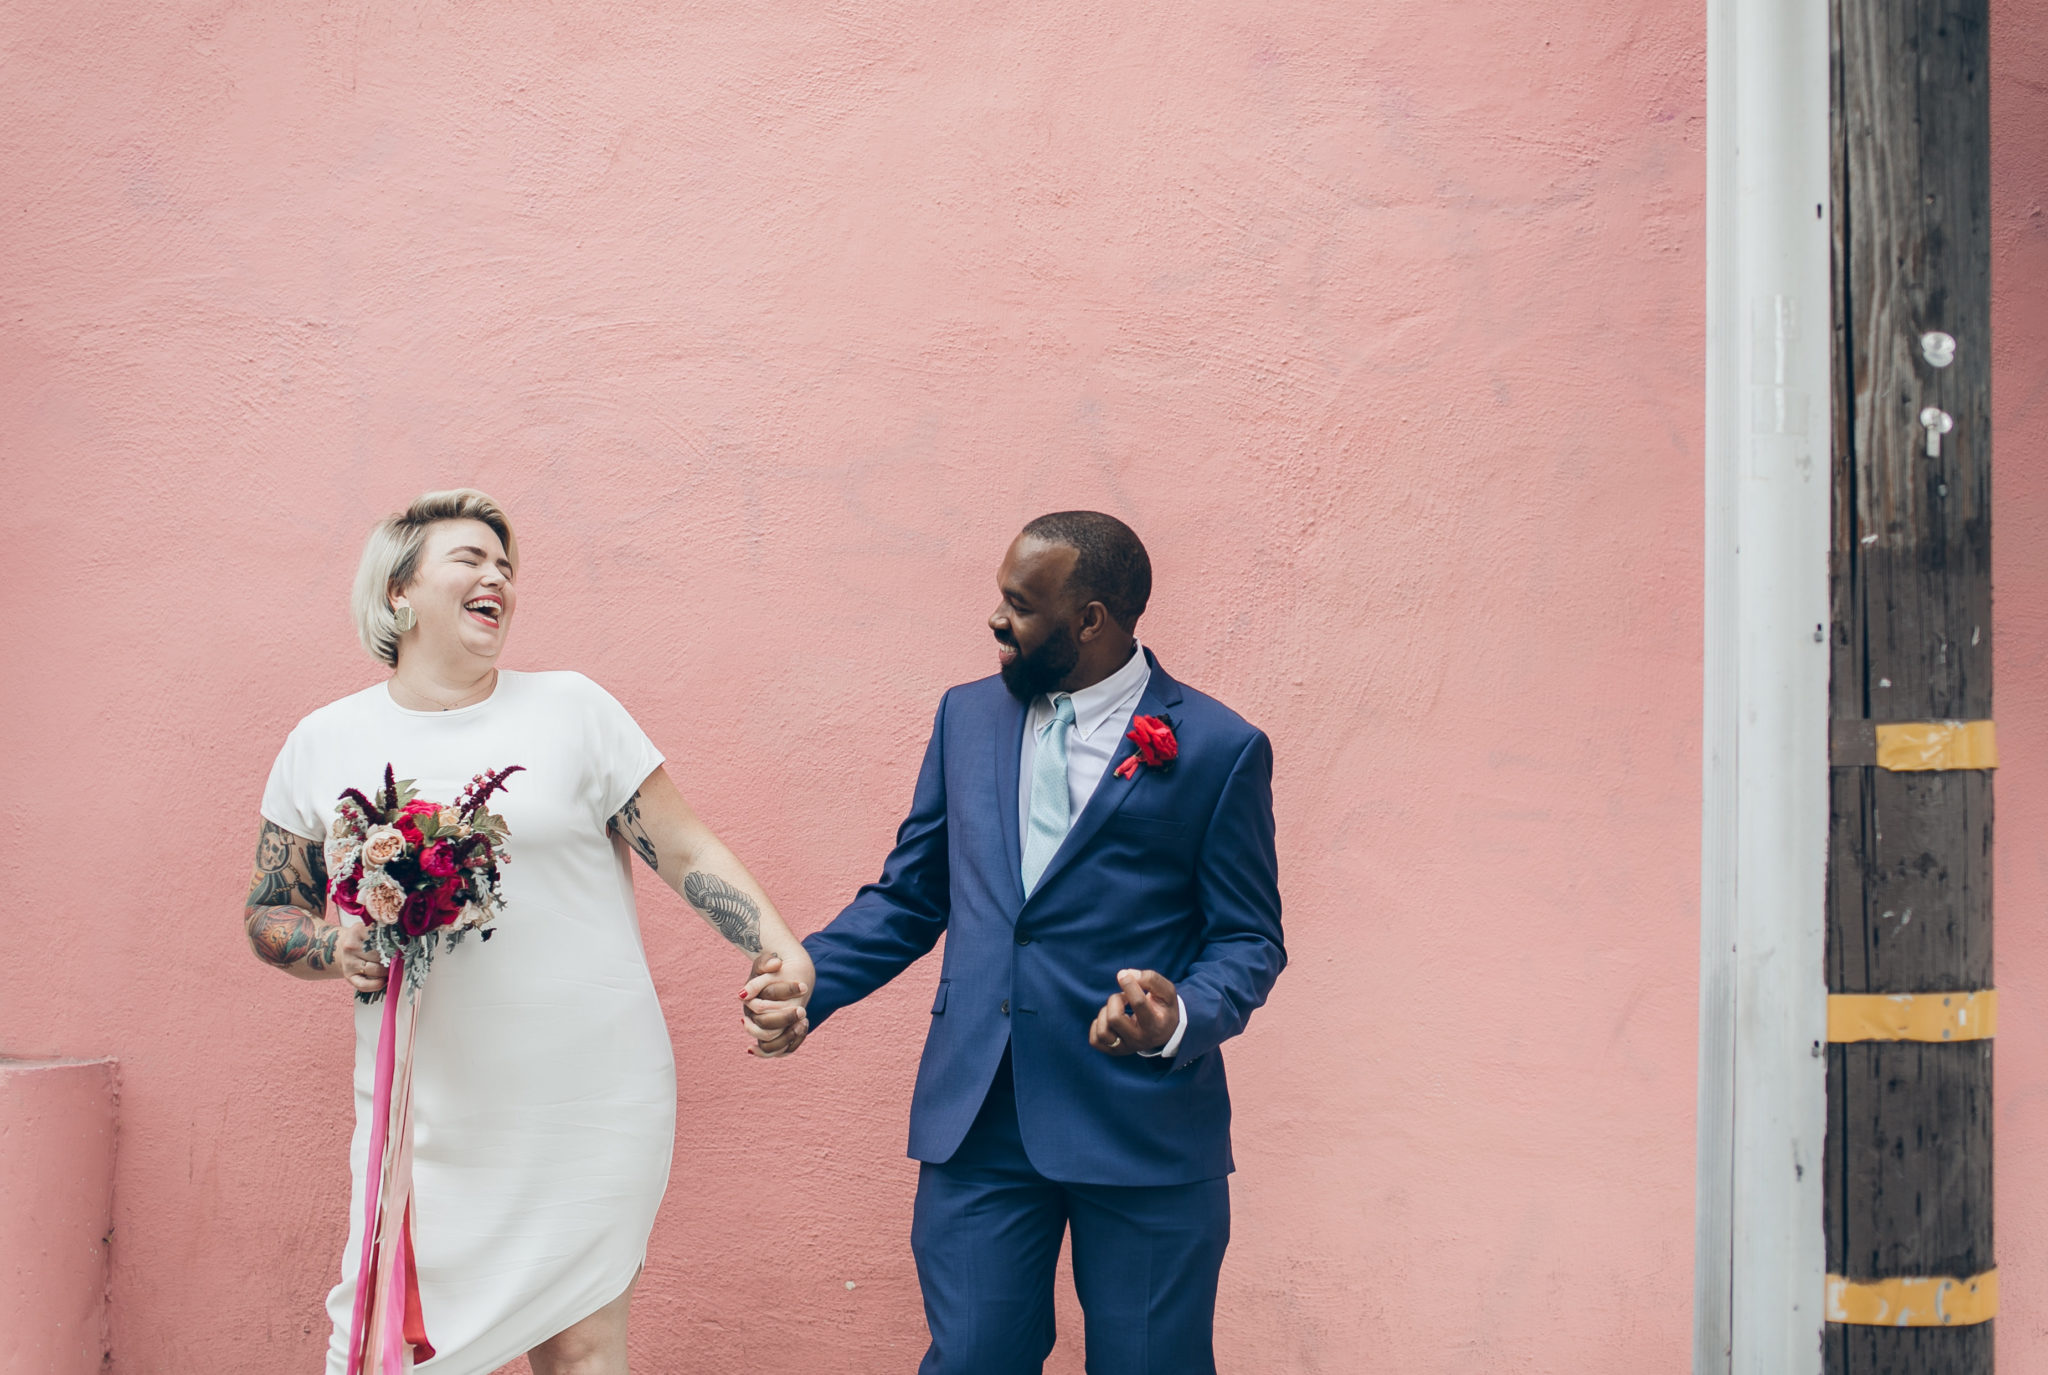 Get Started Wedding Planning With Less Stress